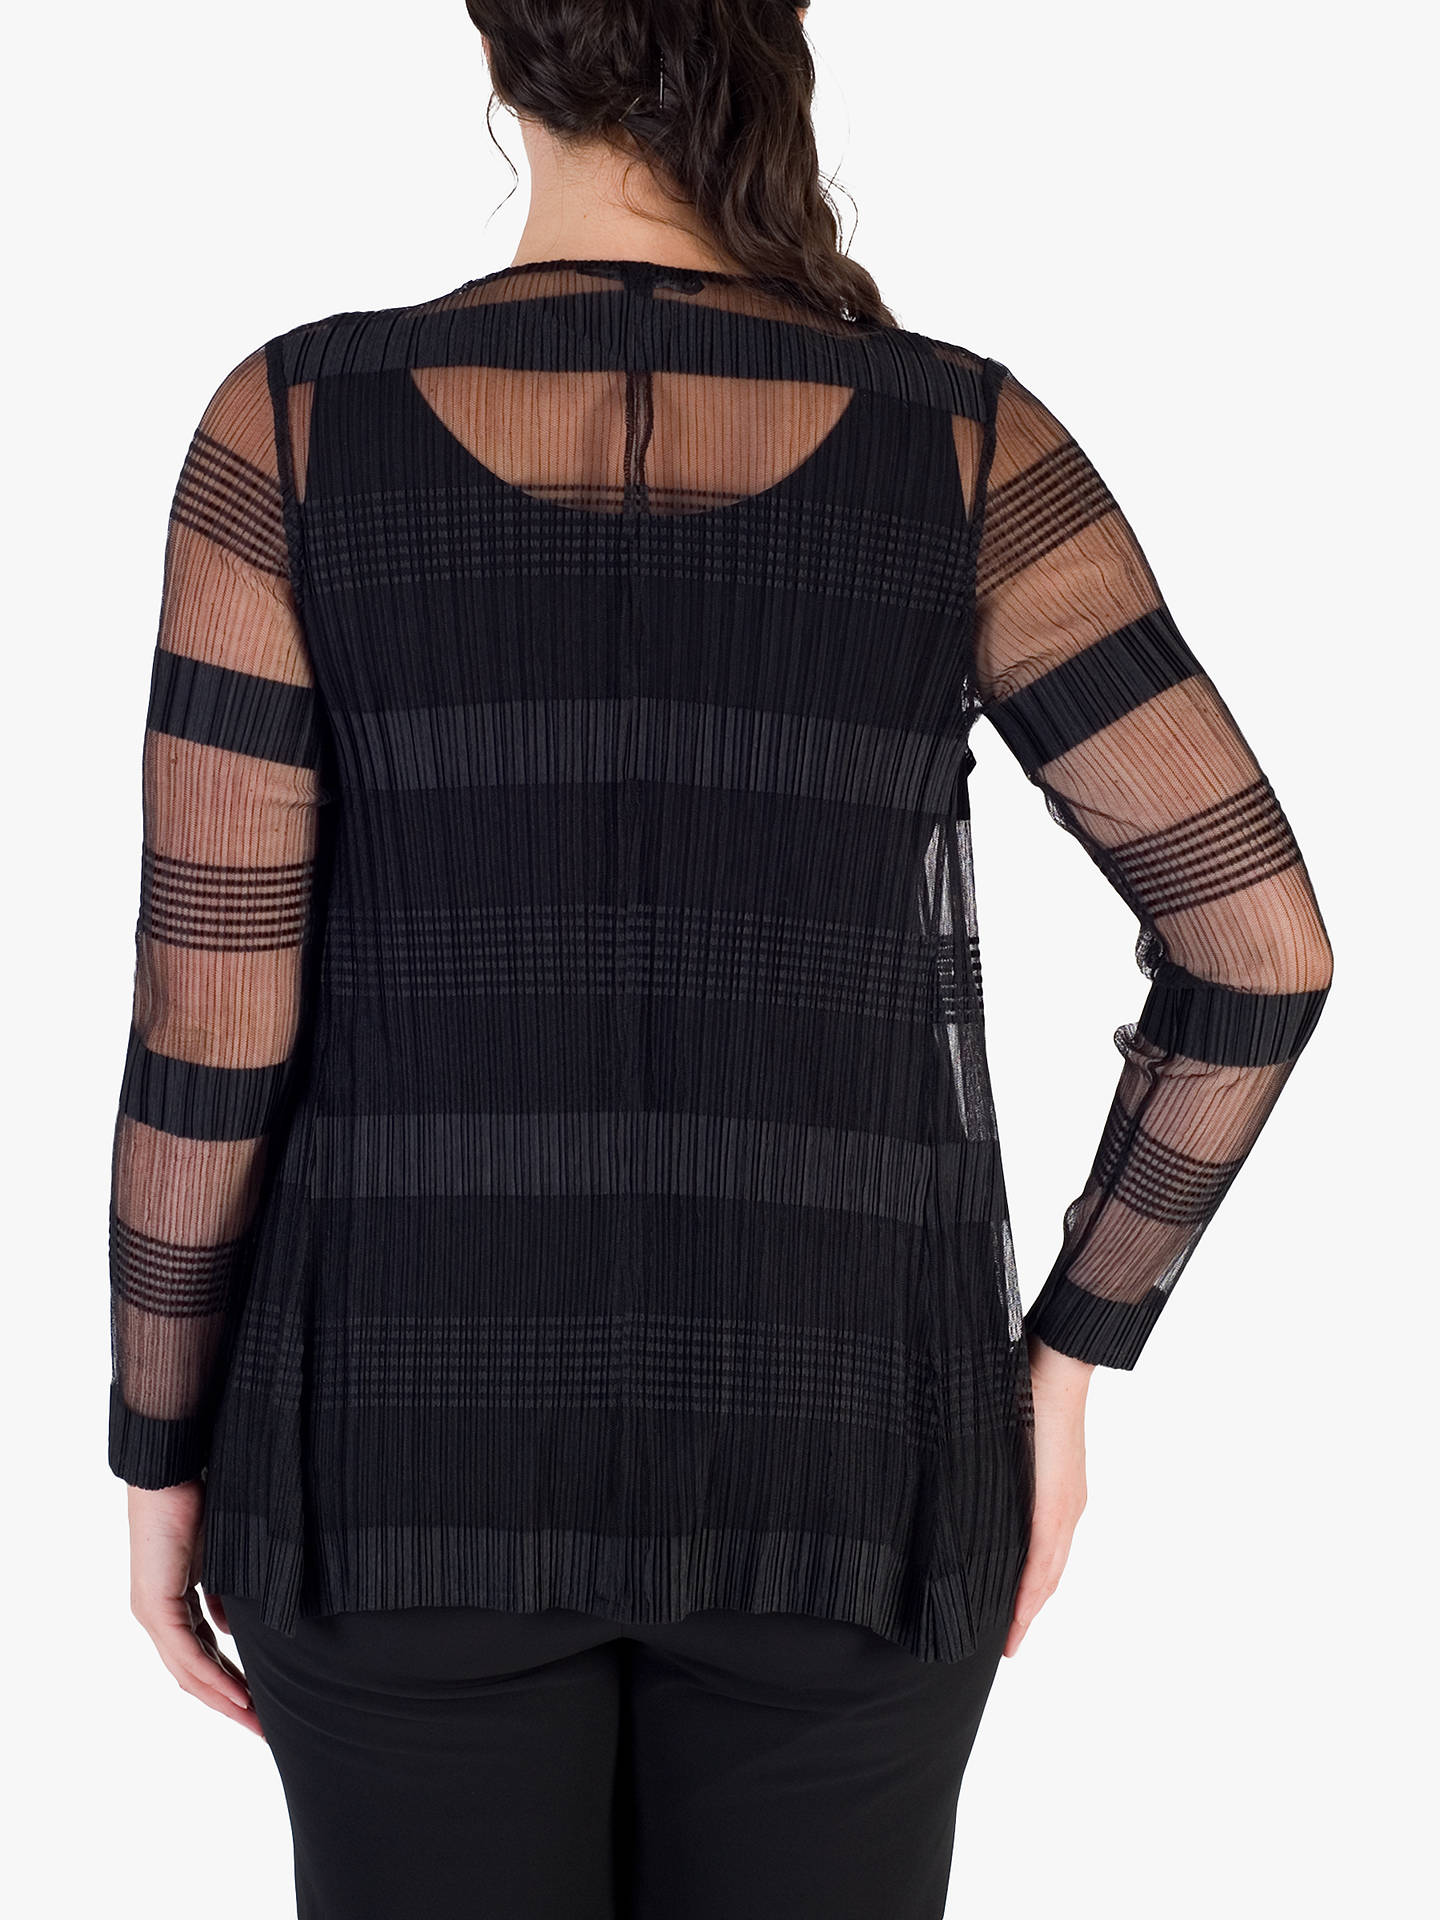 BuyChesca Sheer Shrug, Black, 12-14 Online at johnlewis.com